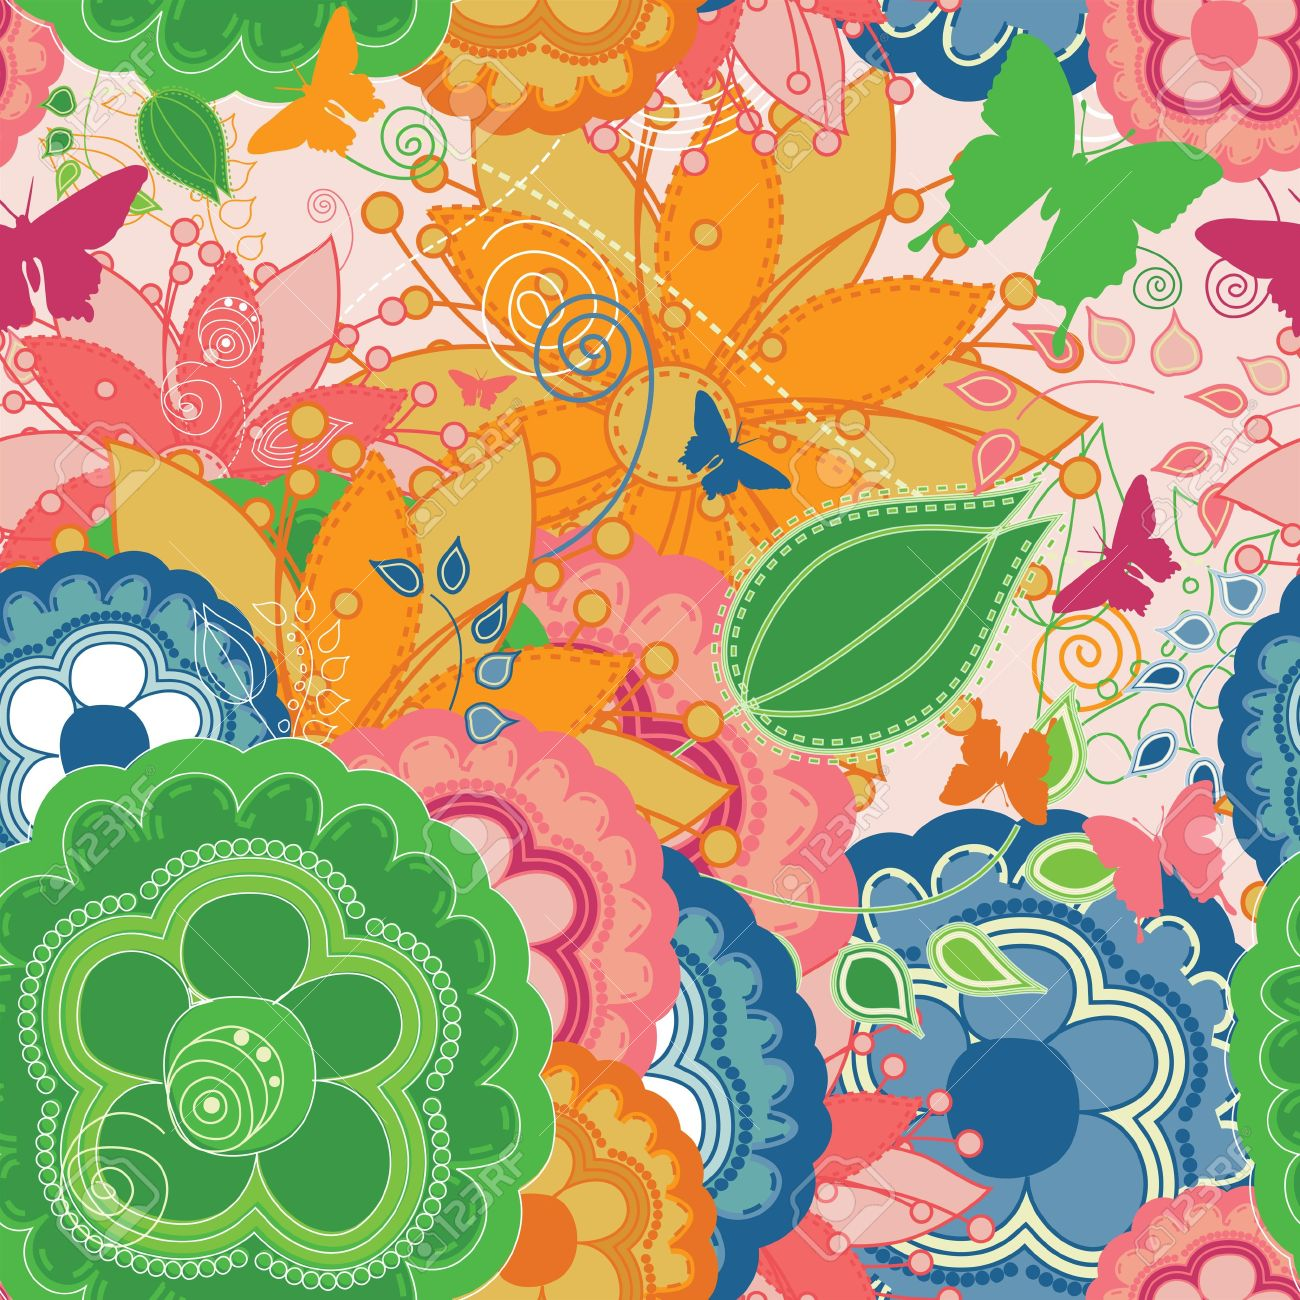 An unseamed colorful pattern that can be used for wallpapers and wrapping papers. Stock Photo - 7723136